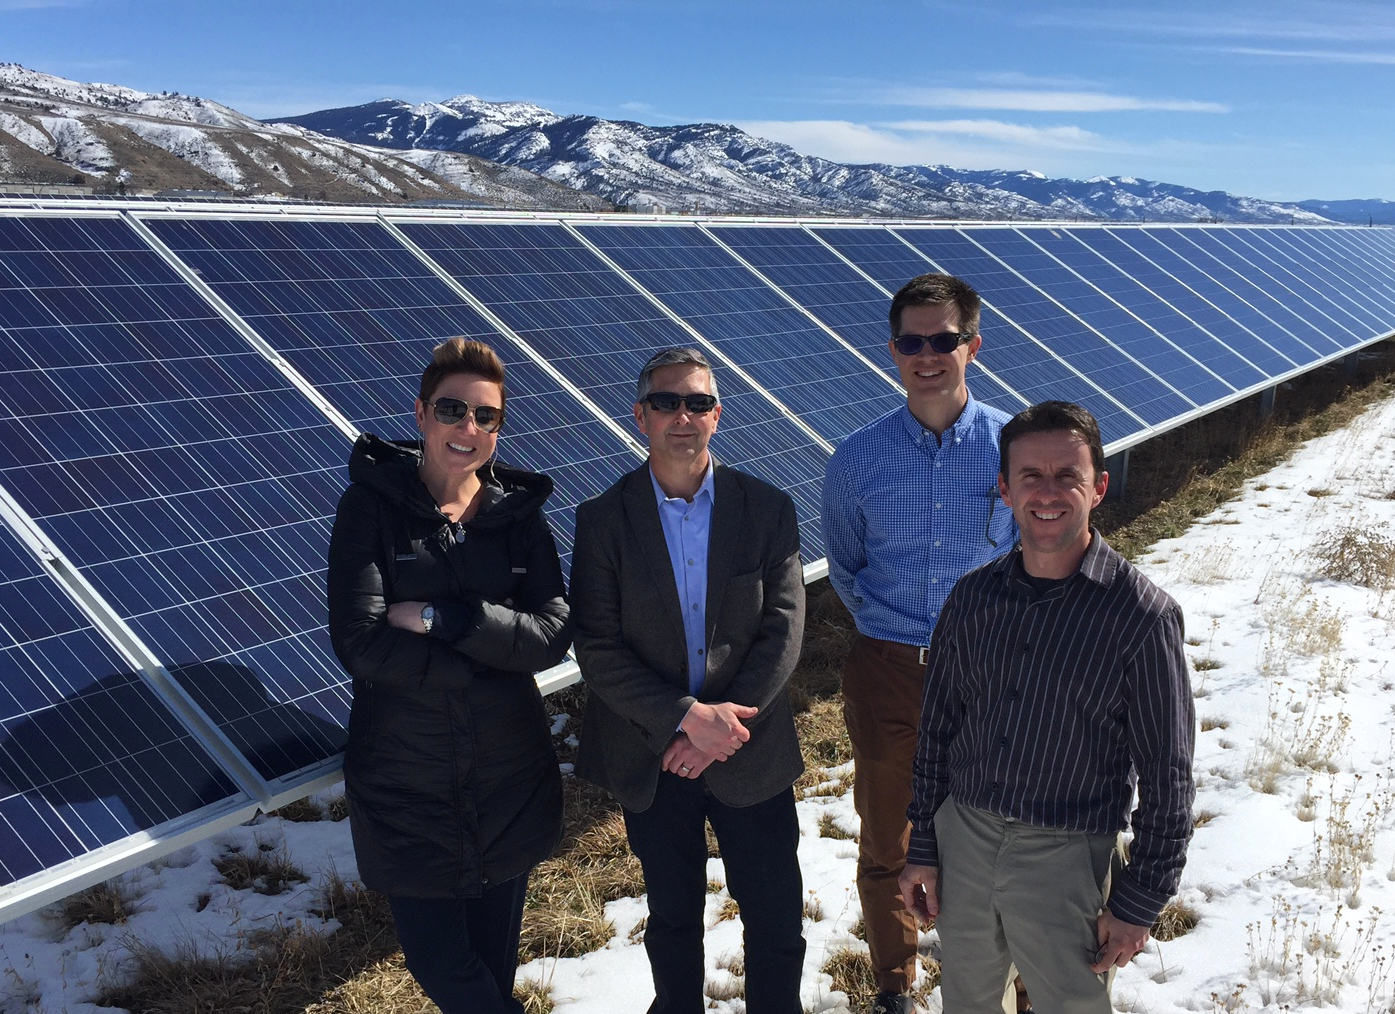 Okay, the snow hadn't melted here quite yet, but…  We took a site visit to the Black Cap Solar Facility outside  Lakeview , after we held a public information meeting on the proposed  Blue Marmot Solar Energy Facility  in town.